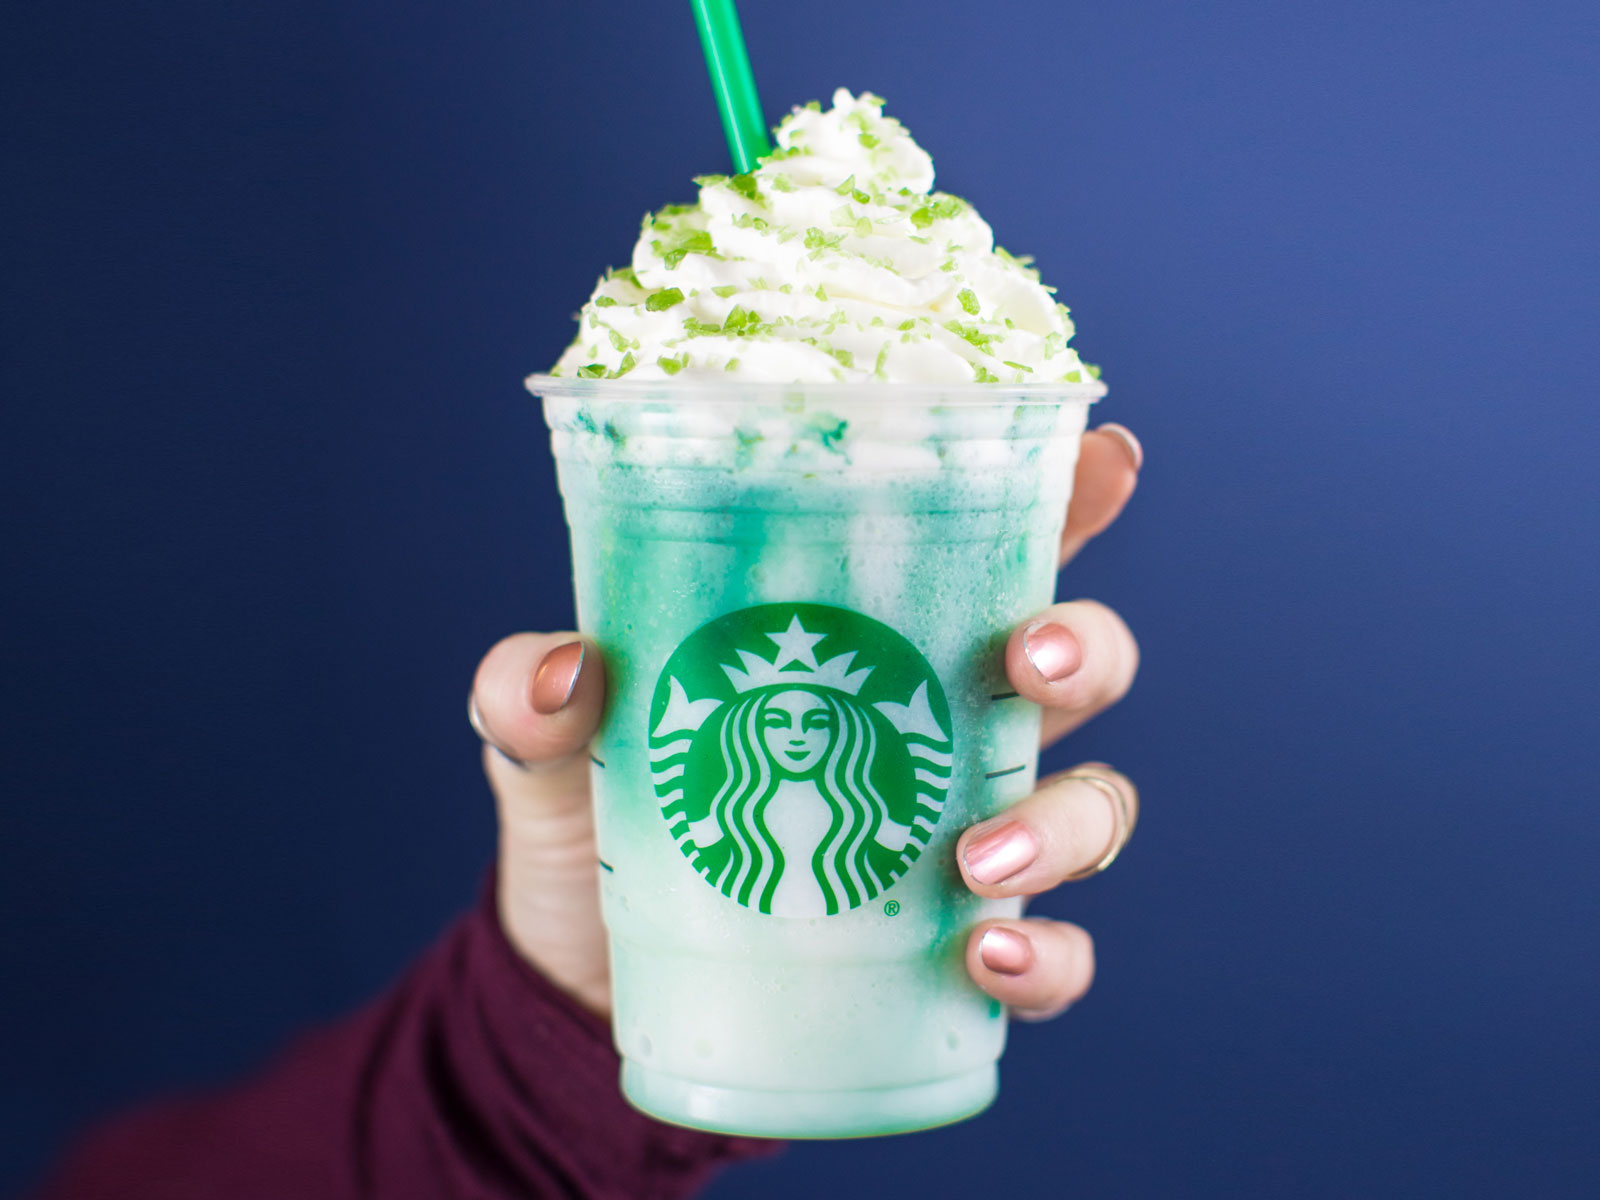 A New Flavor! A Look At Starbucks' Crystal Ball Frappuccino